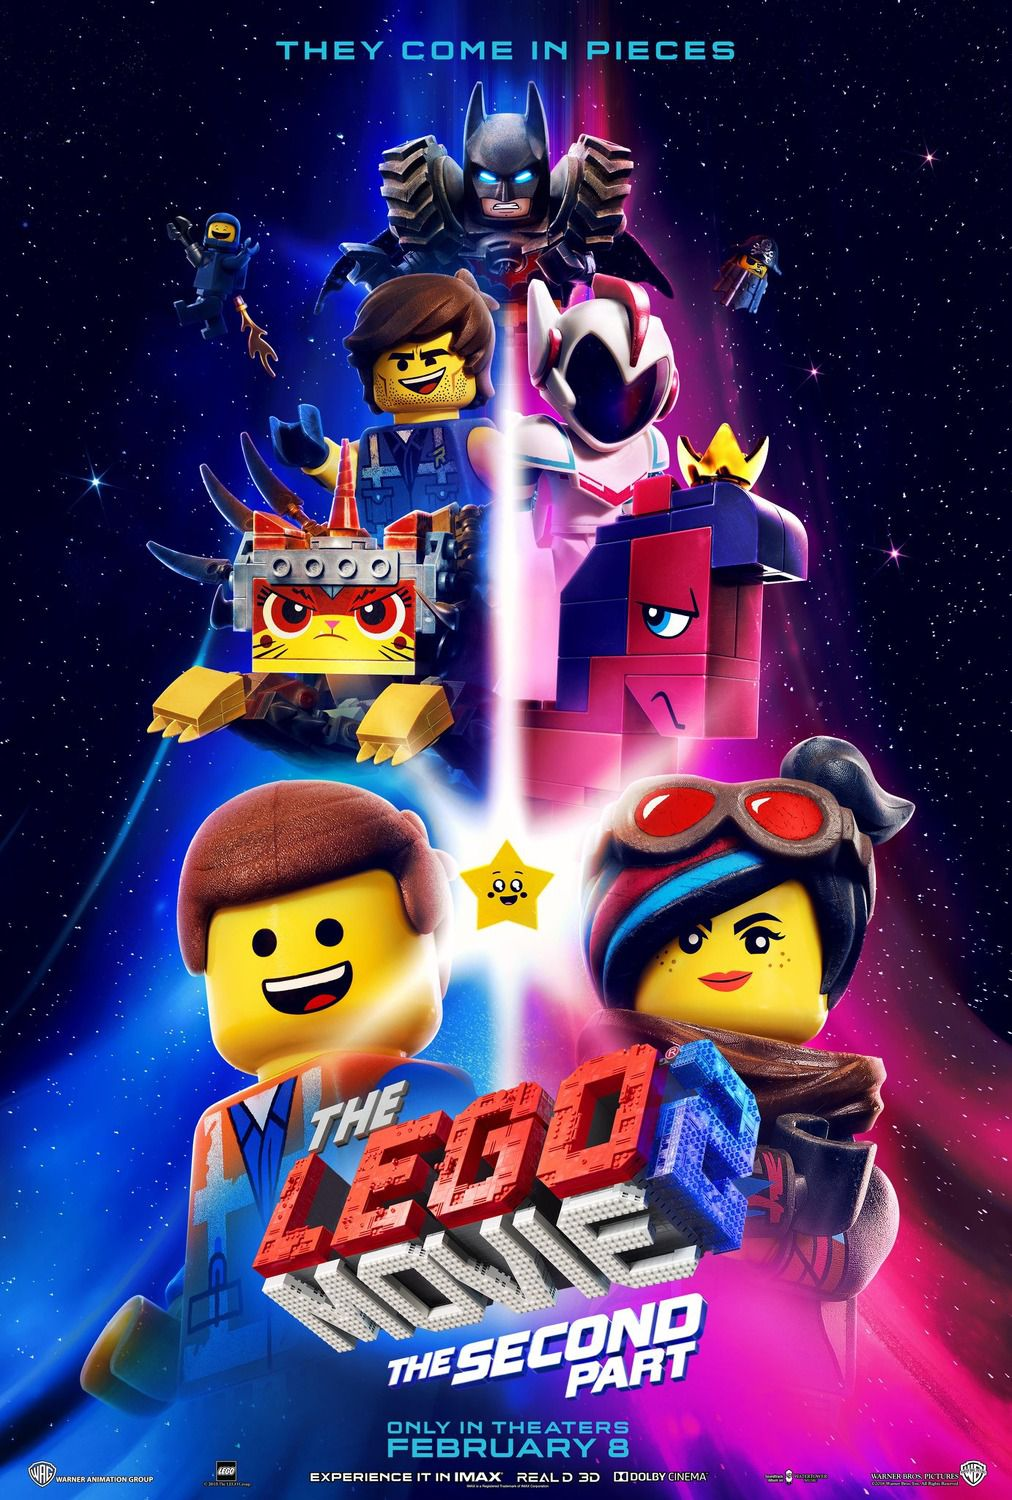 The Lego Movie 2 the Second Part (2019) voices Chris Pratt, Elizabeth Banks, Will Arnett, Tiffany Haddish - poster collection